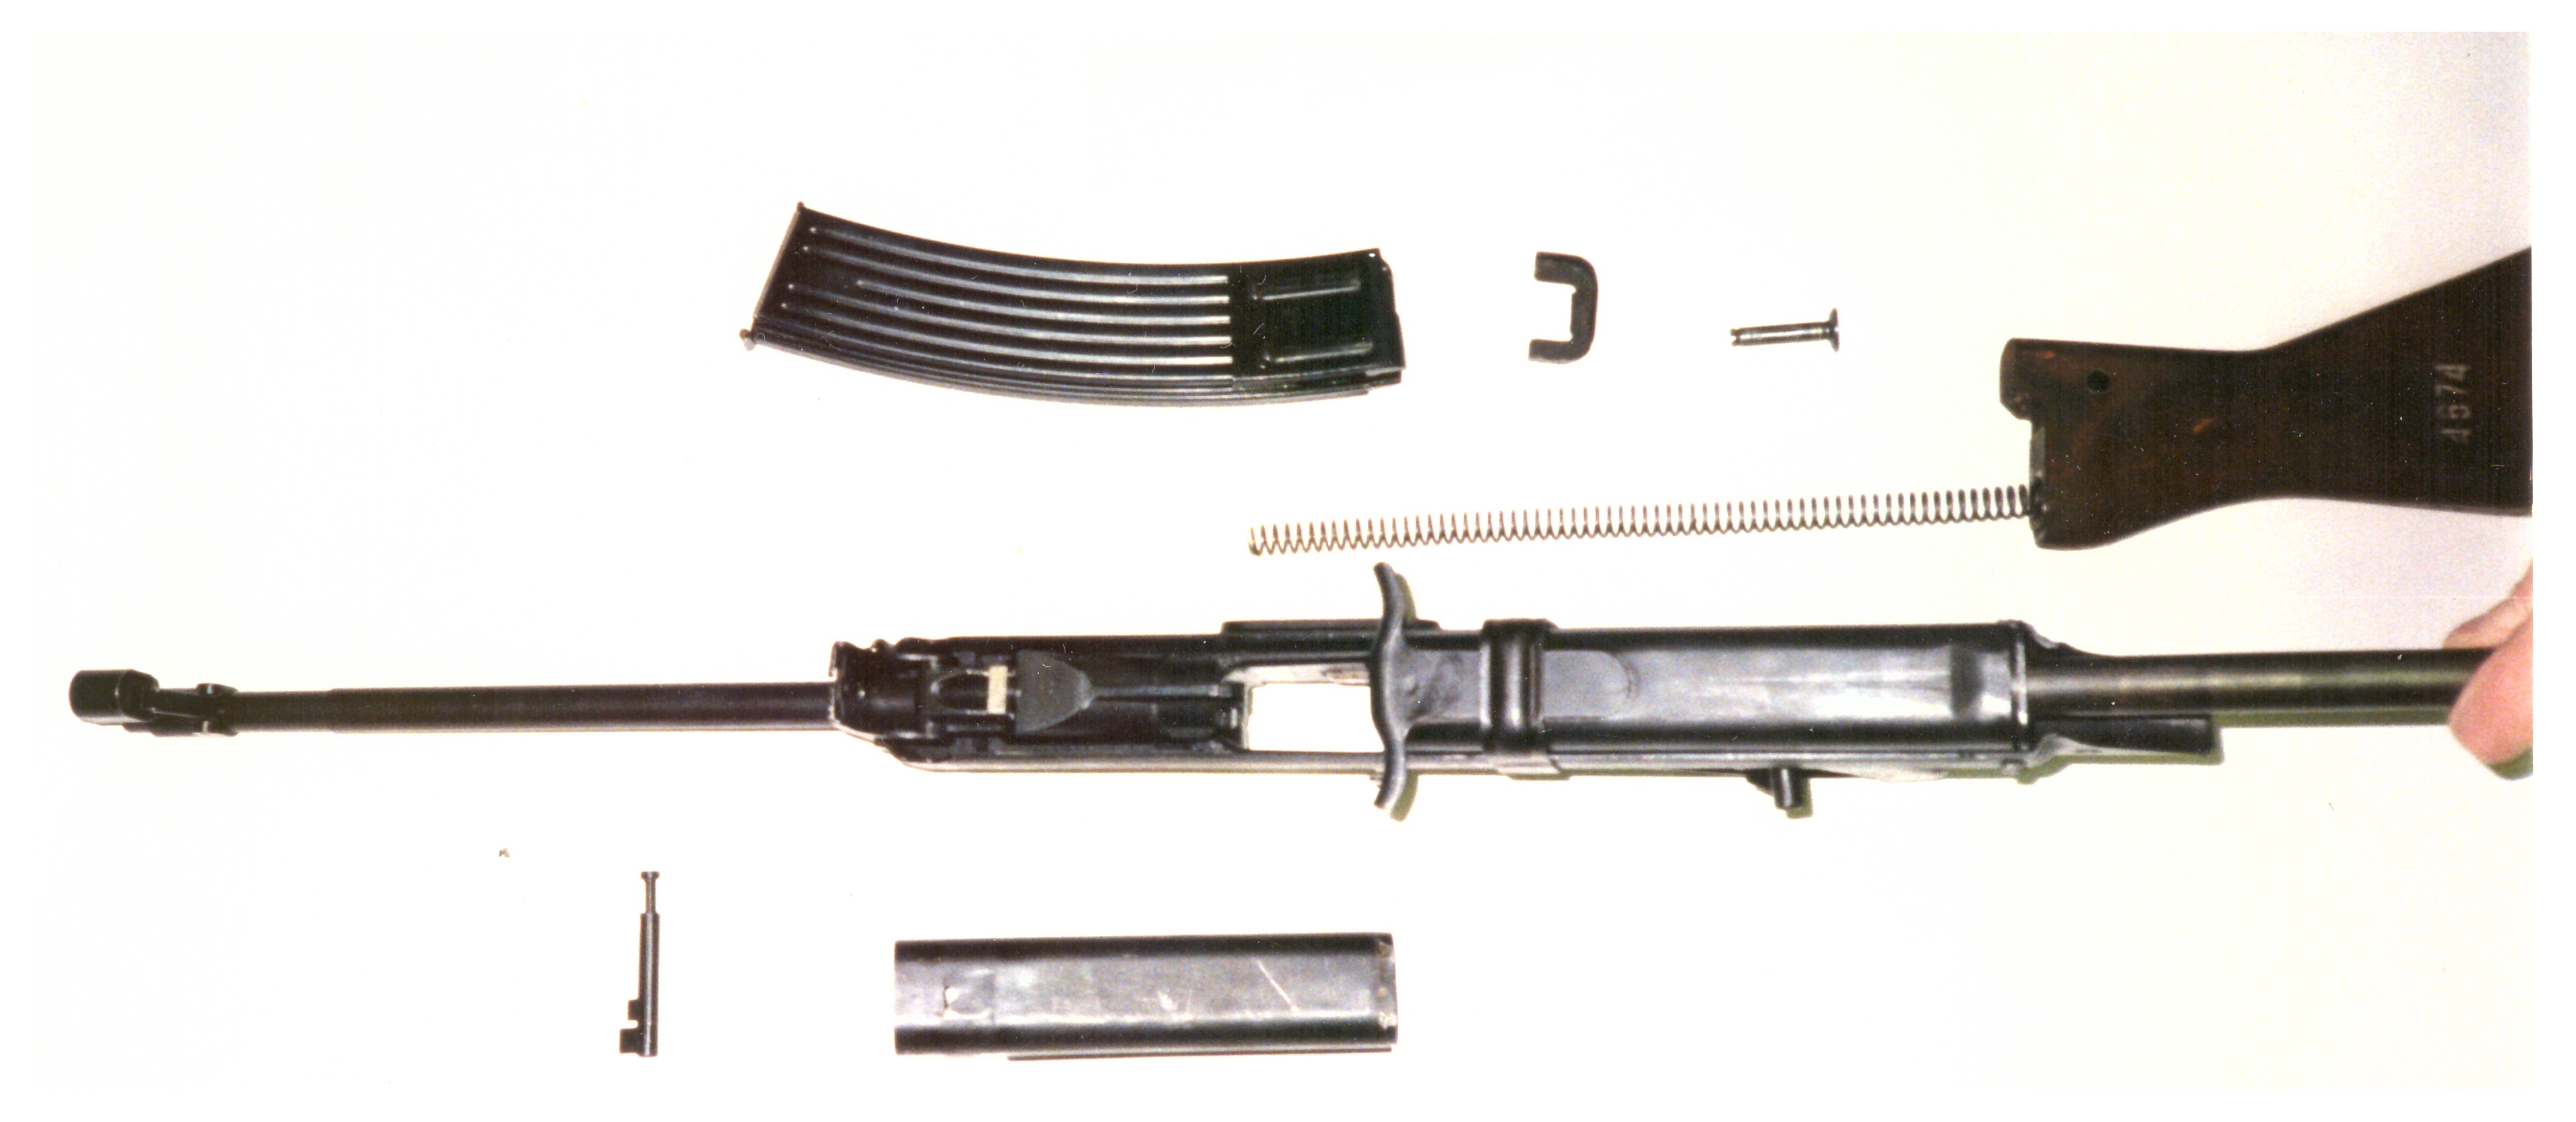 Winchester Model 1200 Parts Diagram Marlin 39a Moreover 795 Stg Horn Prototypes Forgotten Weapons 3823x1665